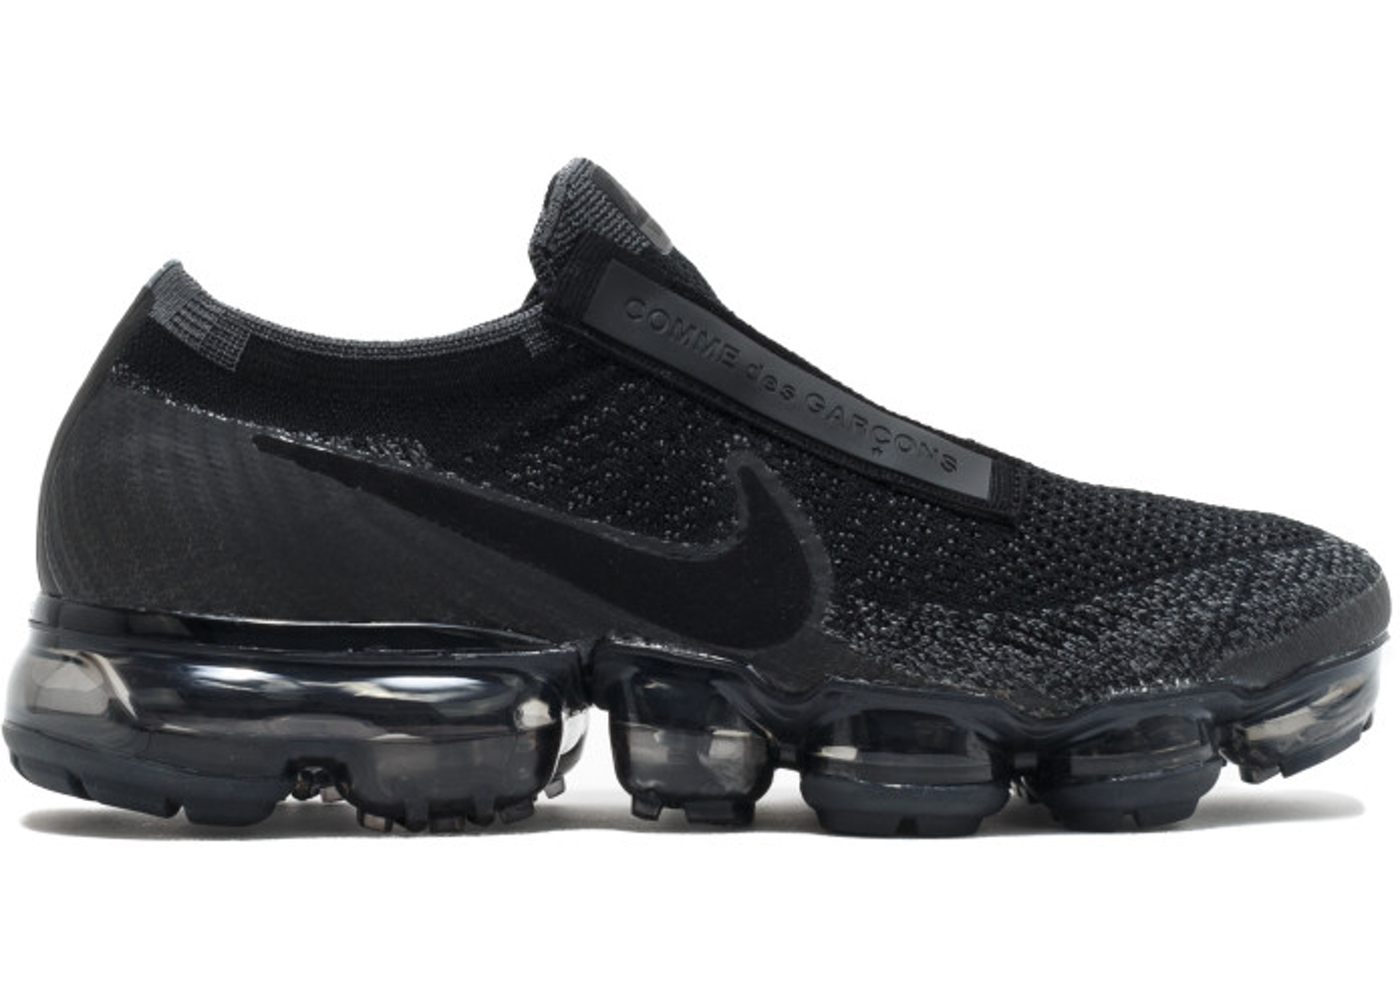 The Nike Air VaporMax Will Debut This Weekend In Three Different